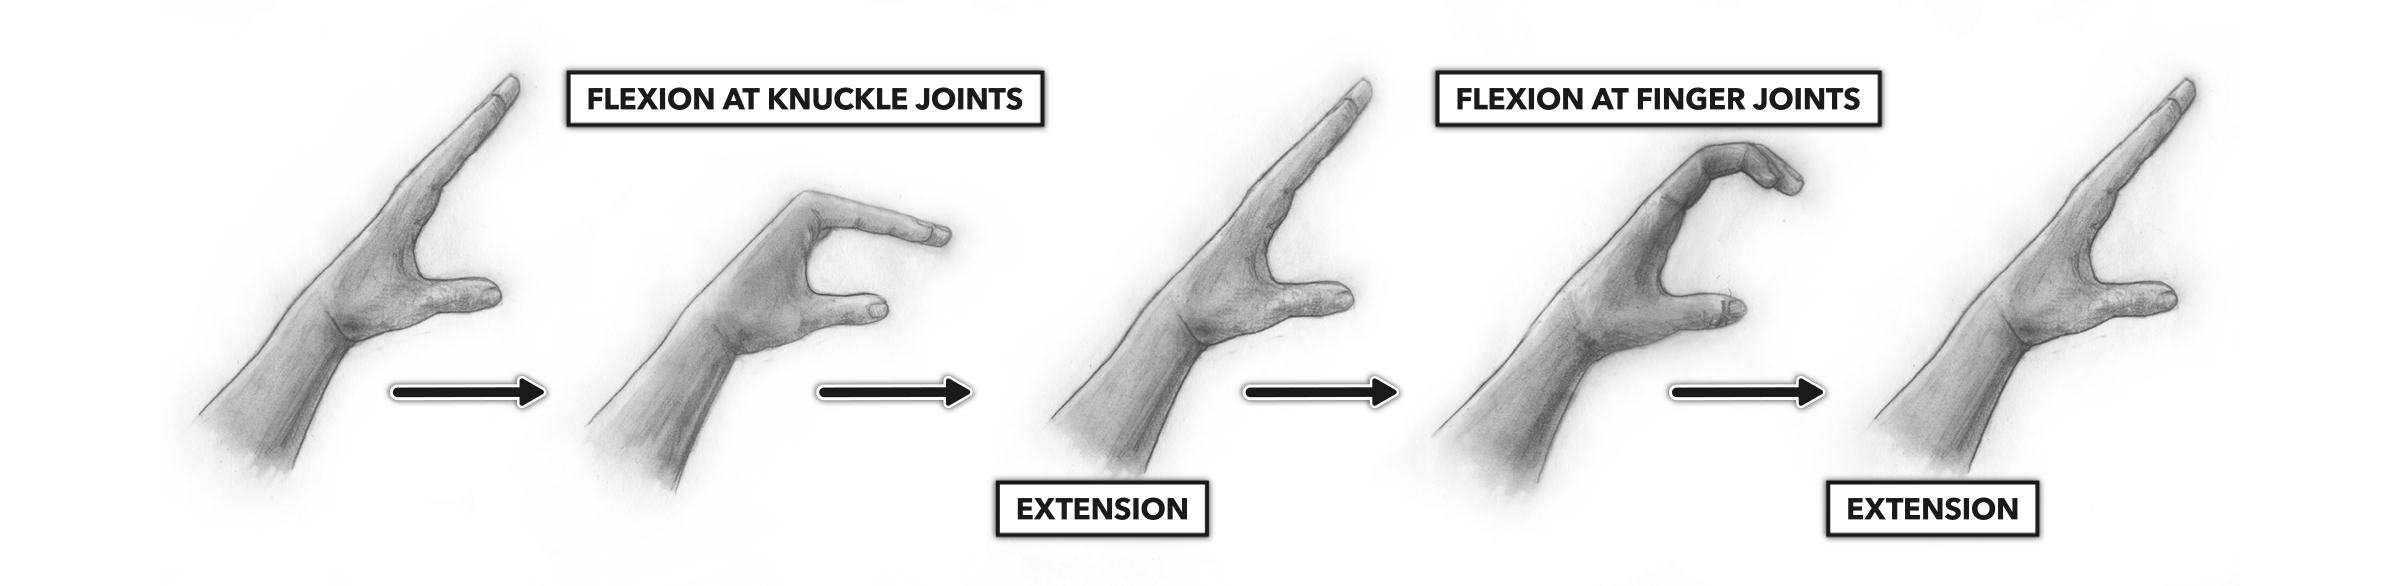 CrossFit | Movement About Joints, Part 4: The Hand and Fingers